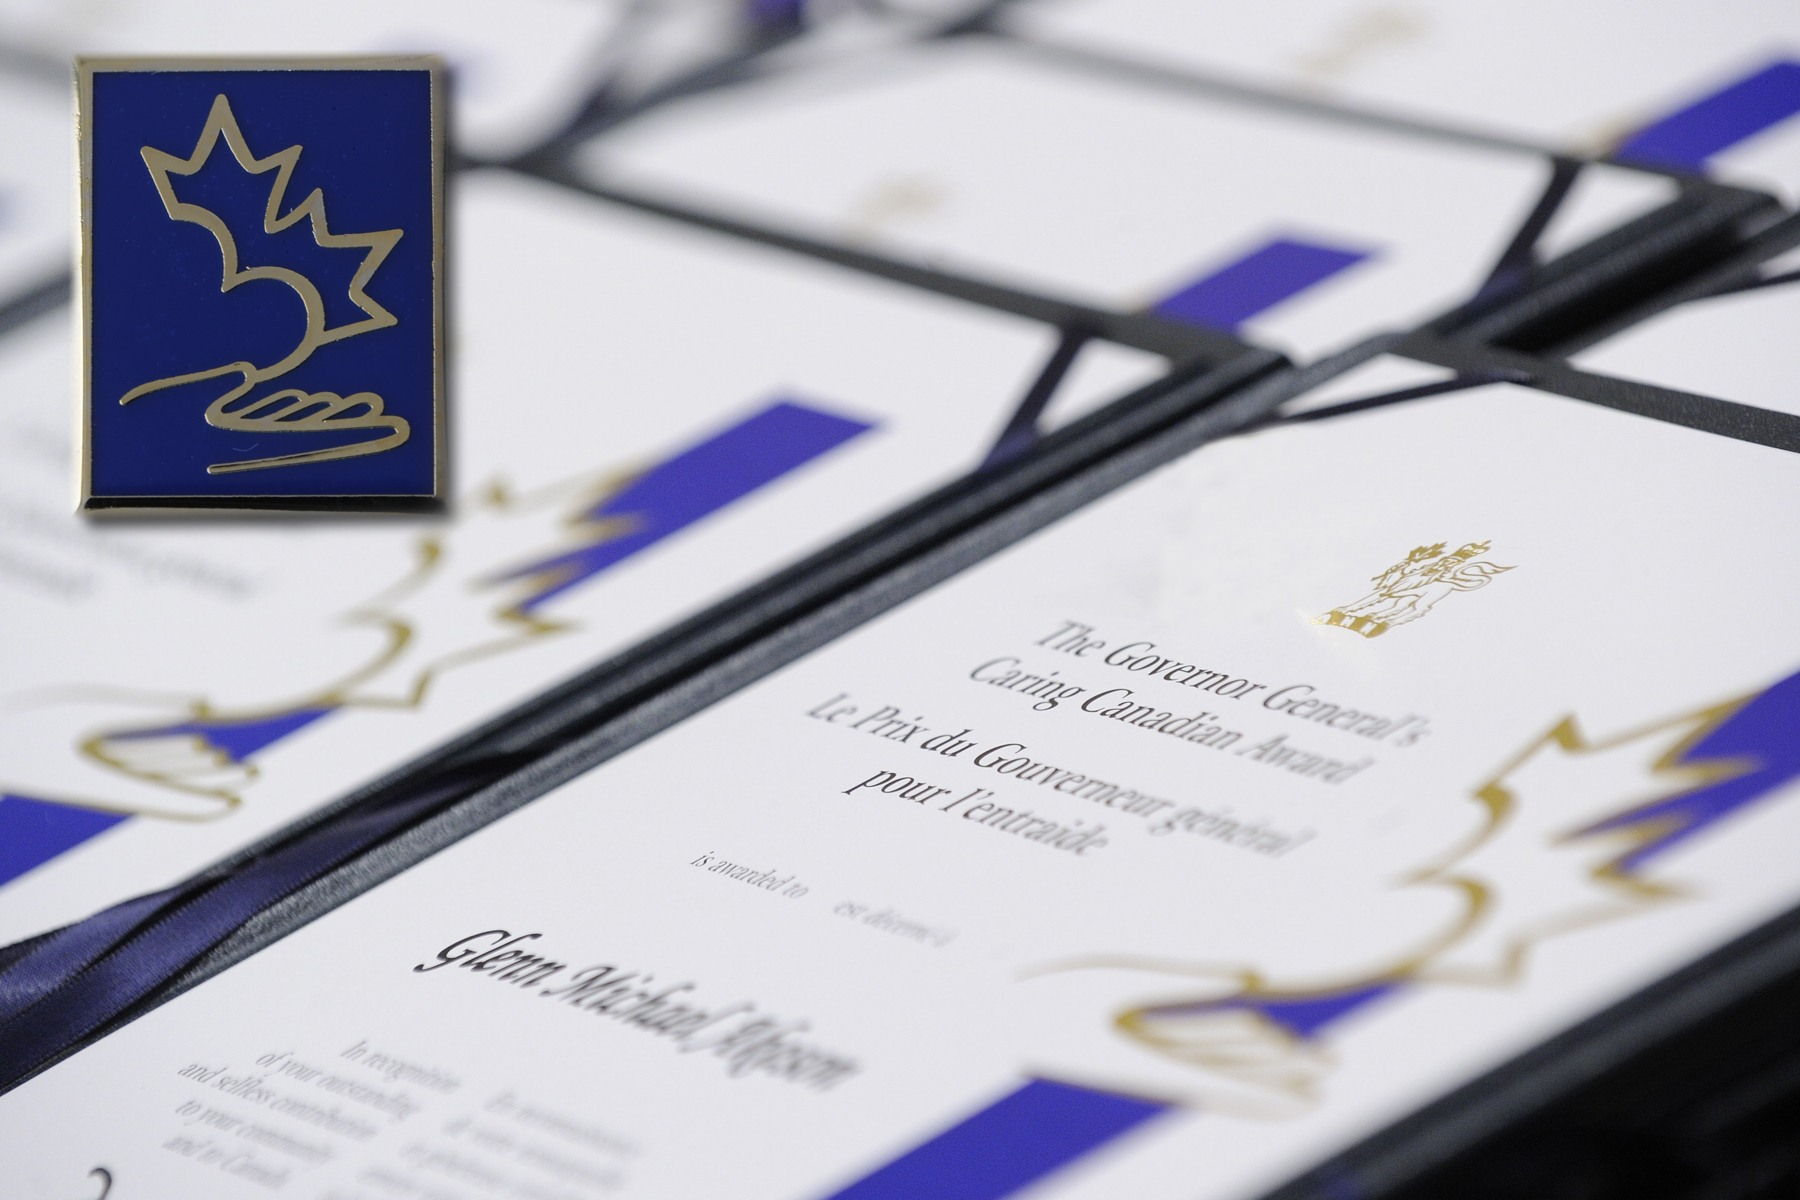 As part of the Governor General's program to highlight National Volunteer Week, His Excellency presented the Governor General's Caring Canadian Award to 28 volunteers from across the country and various sectors during a ceremony at Rideau Hall.